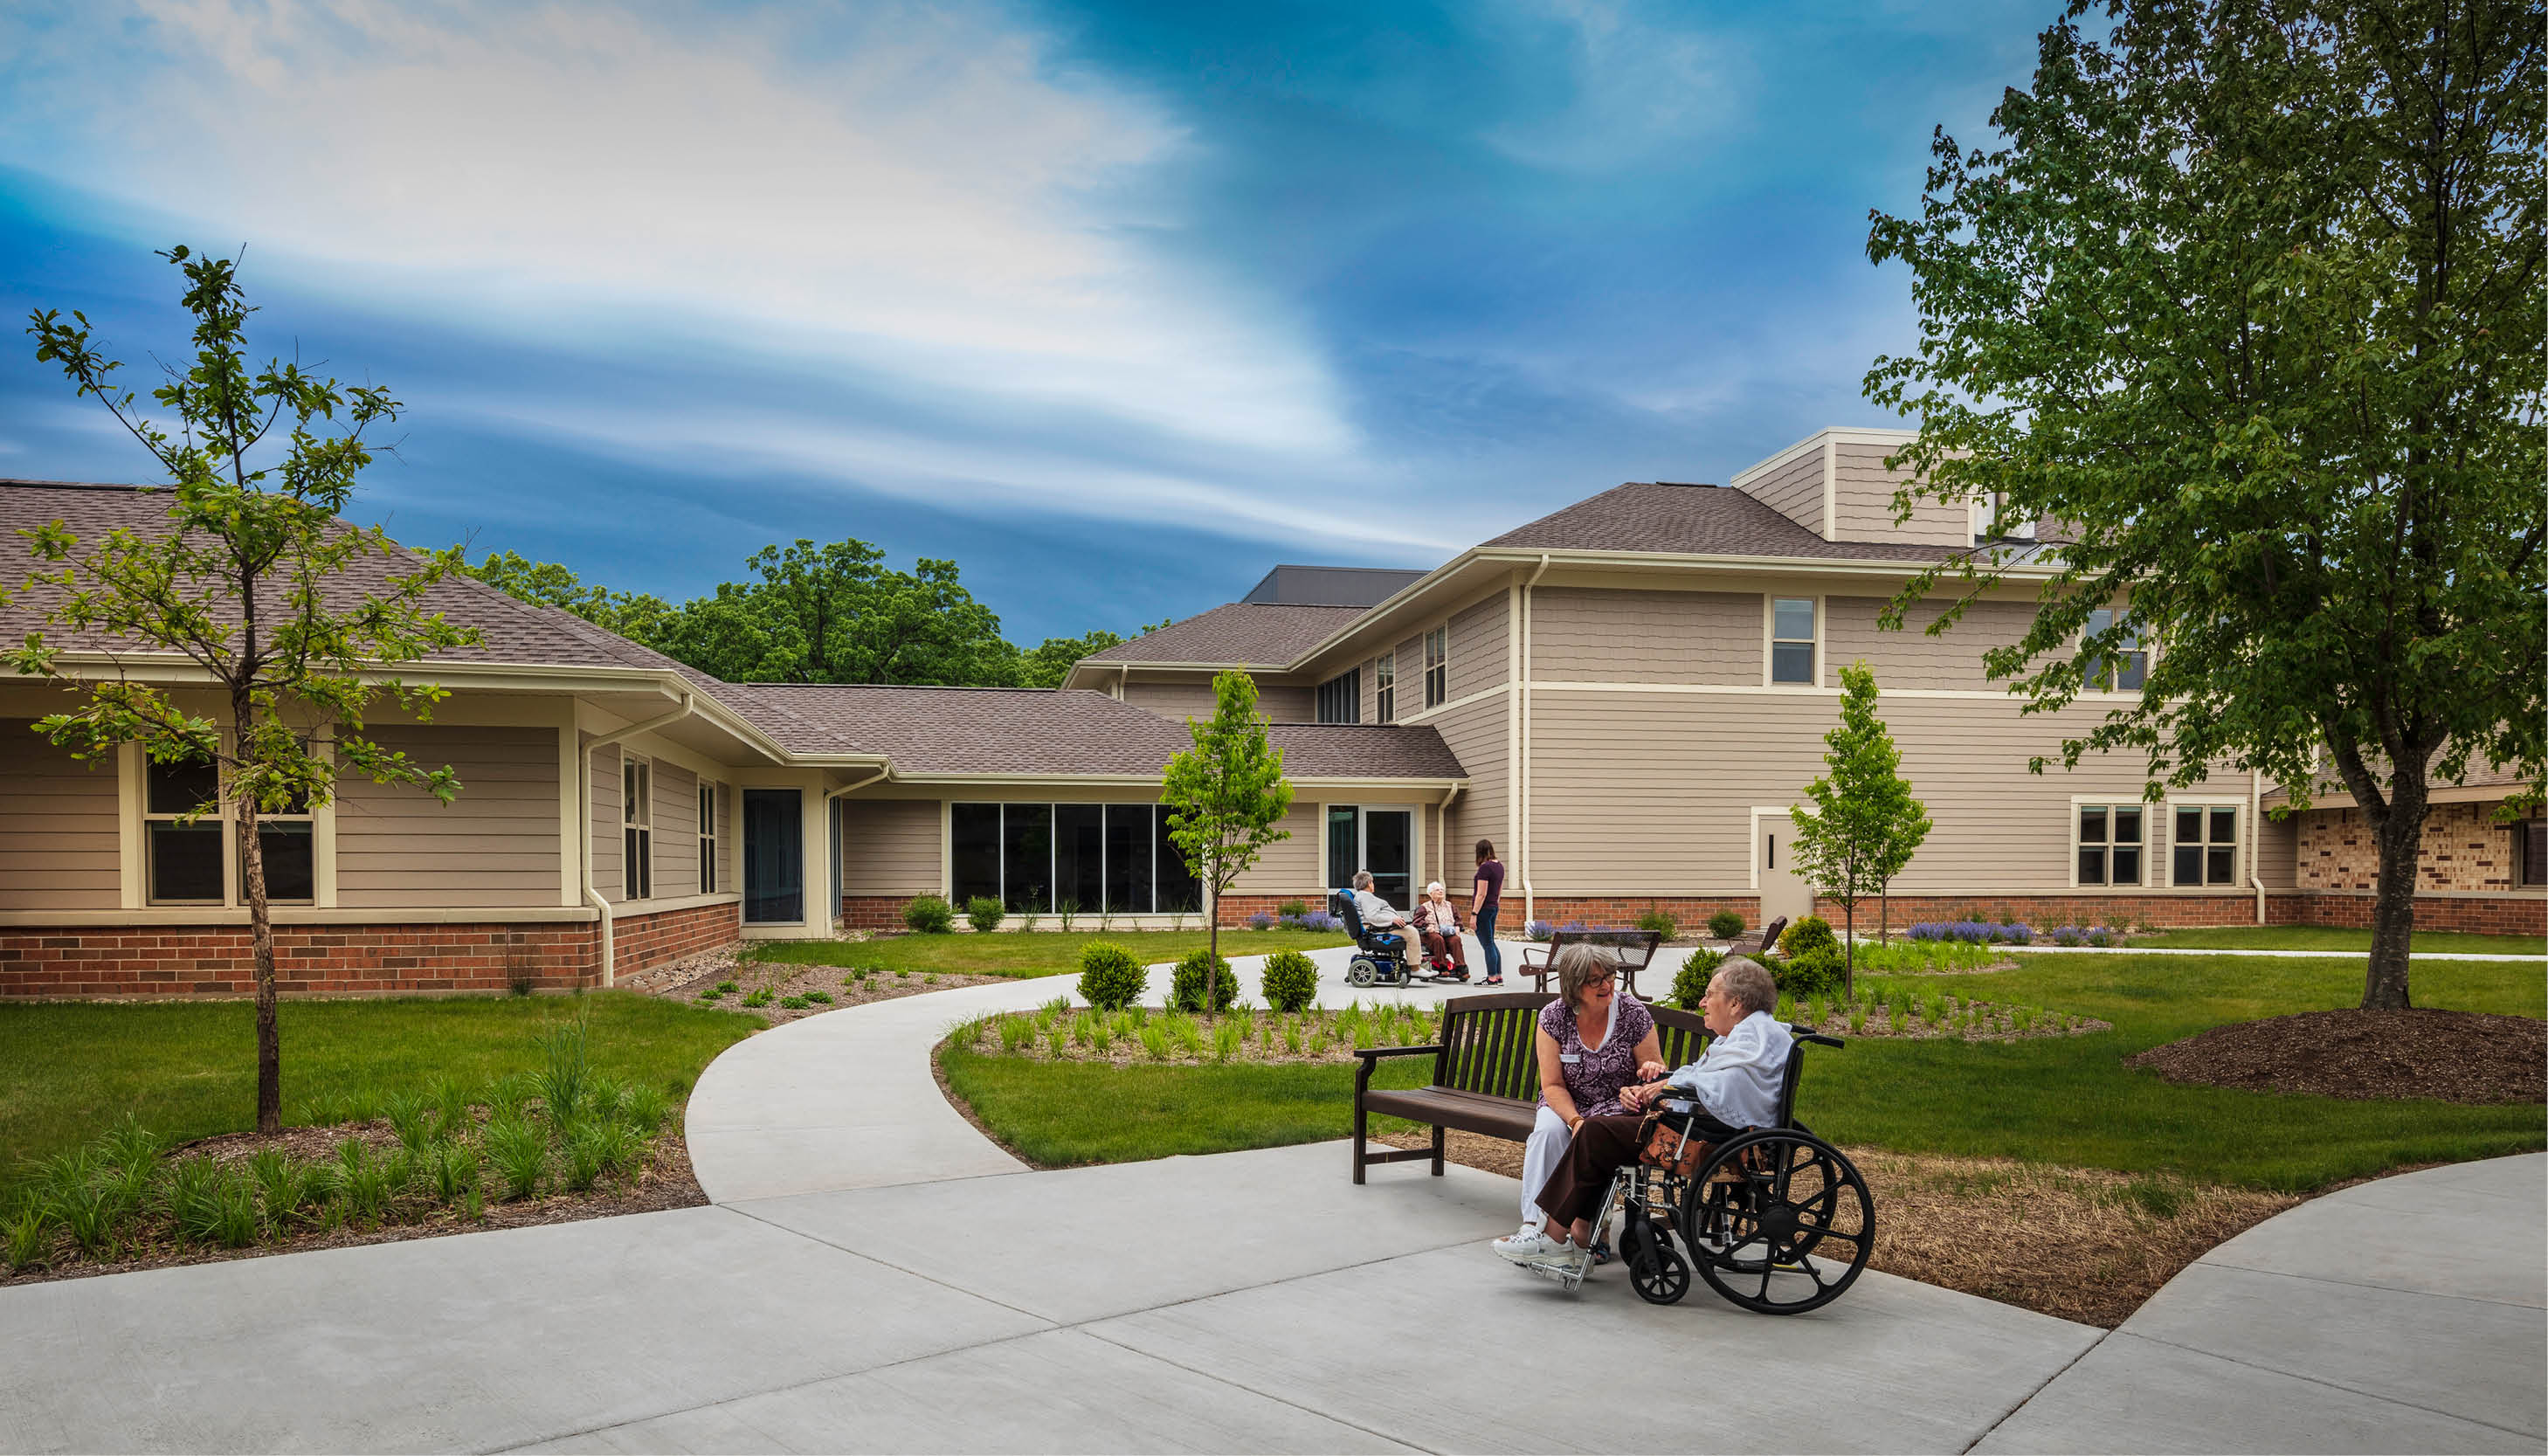 Kenosha County's Brookside Care Center lands on Newsweek list of top nursing homes Image